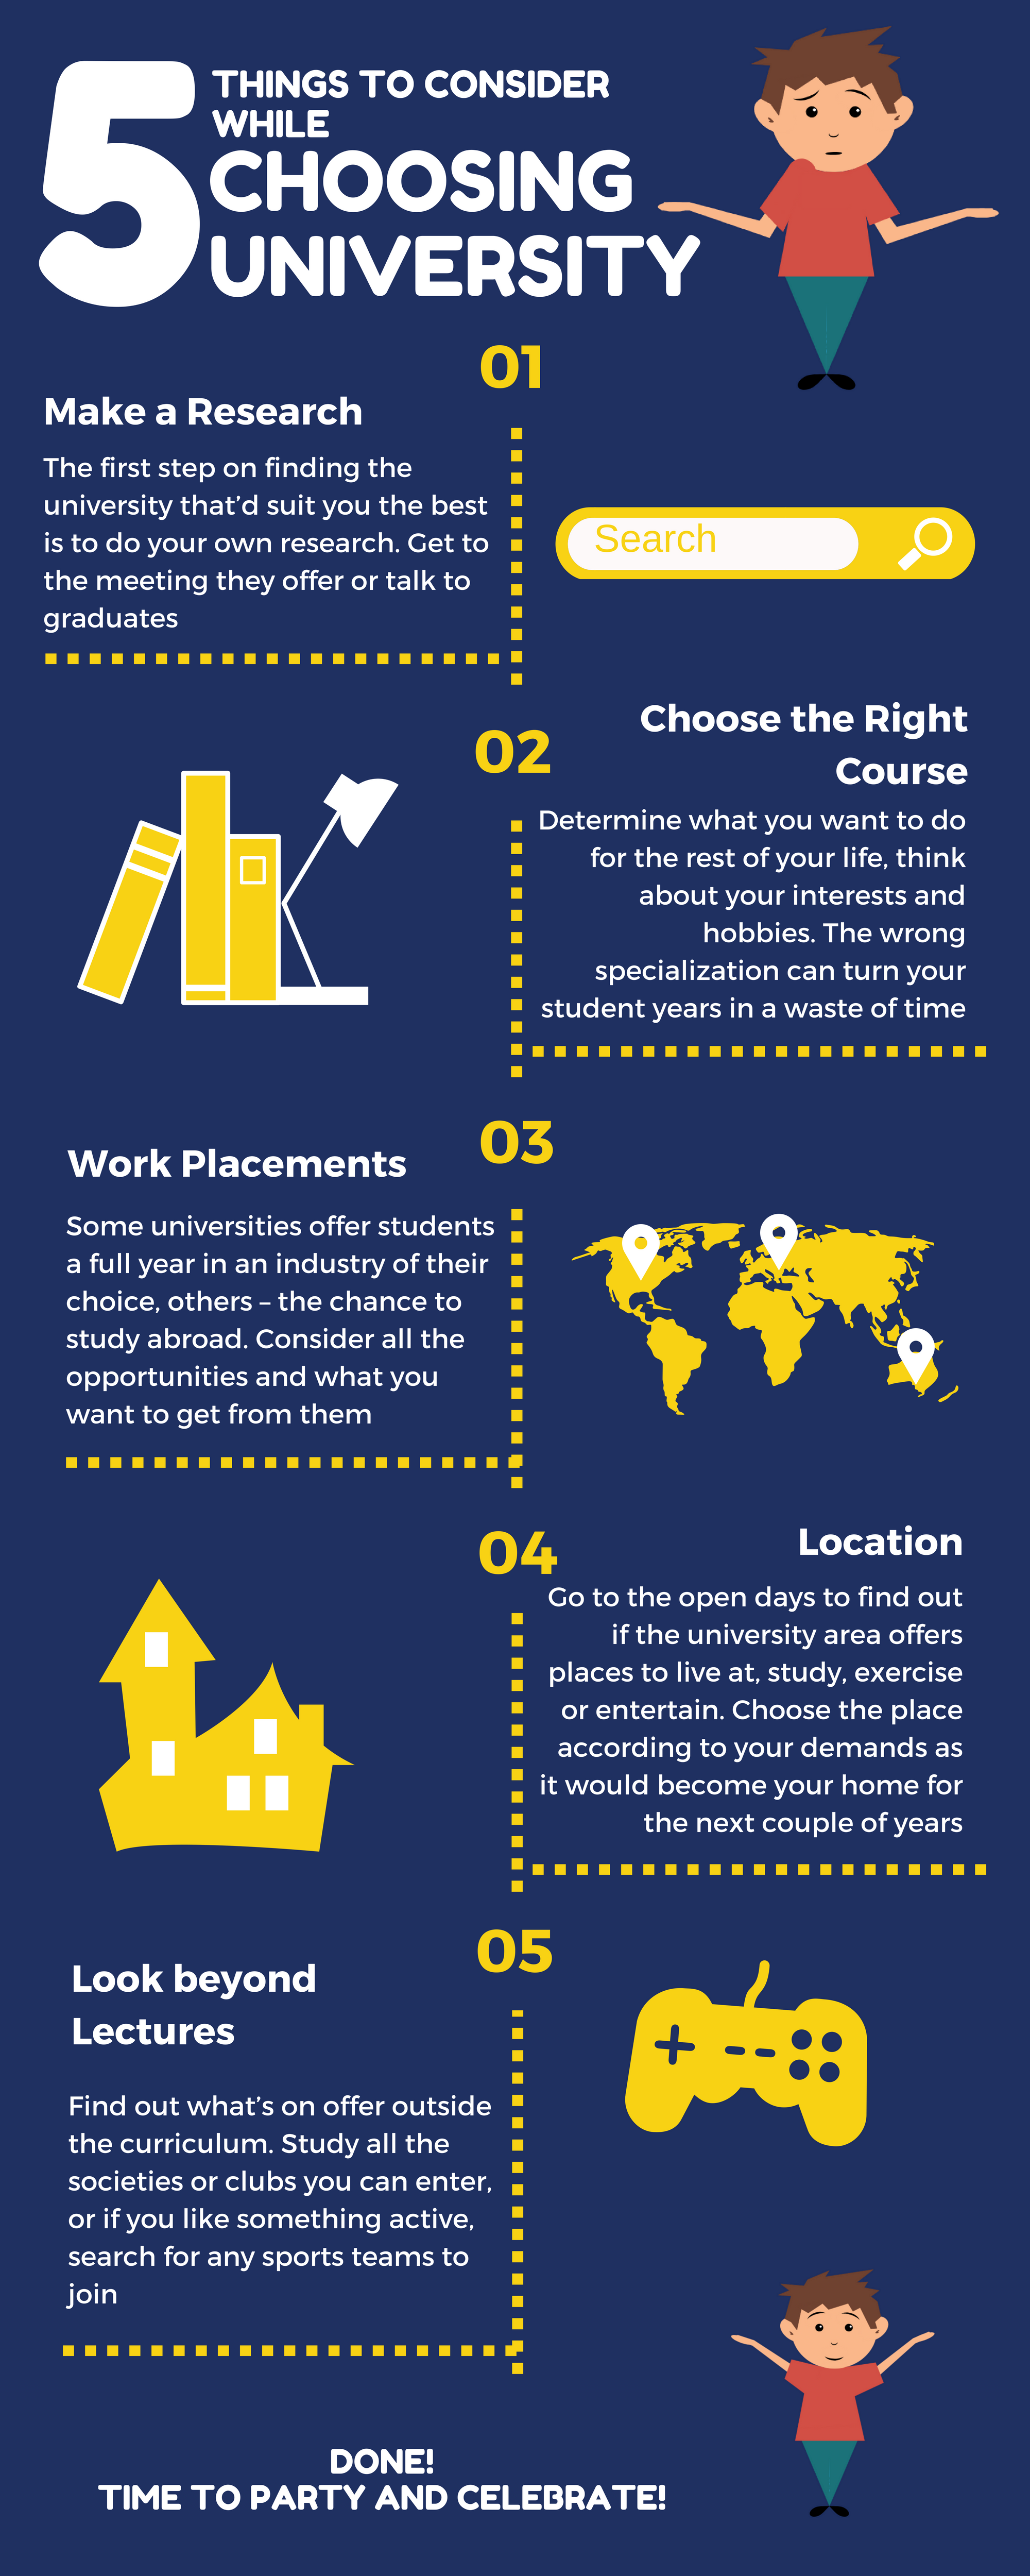 5 Things To Consider While Choosing University #infographic